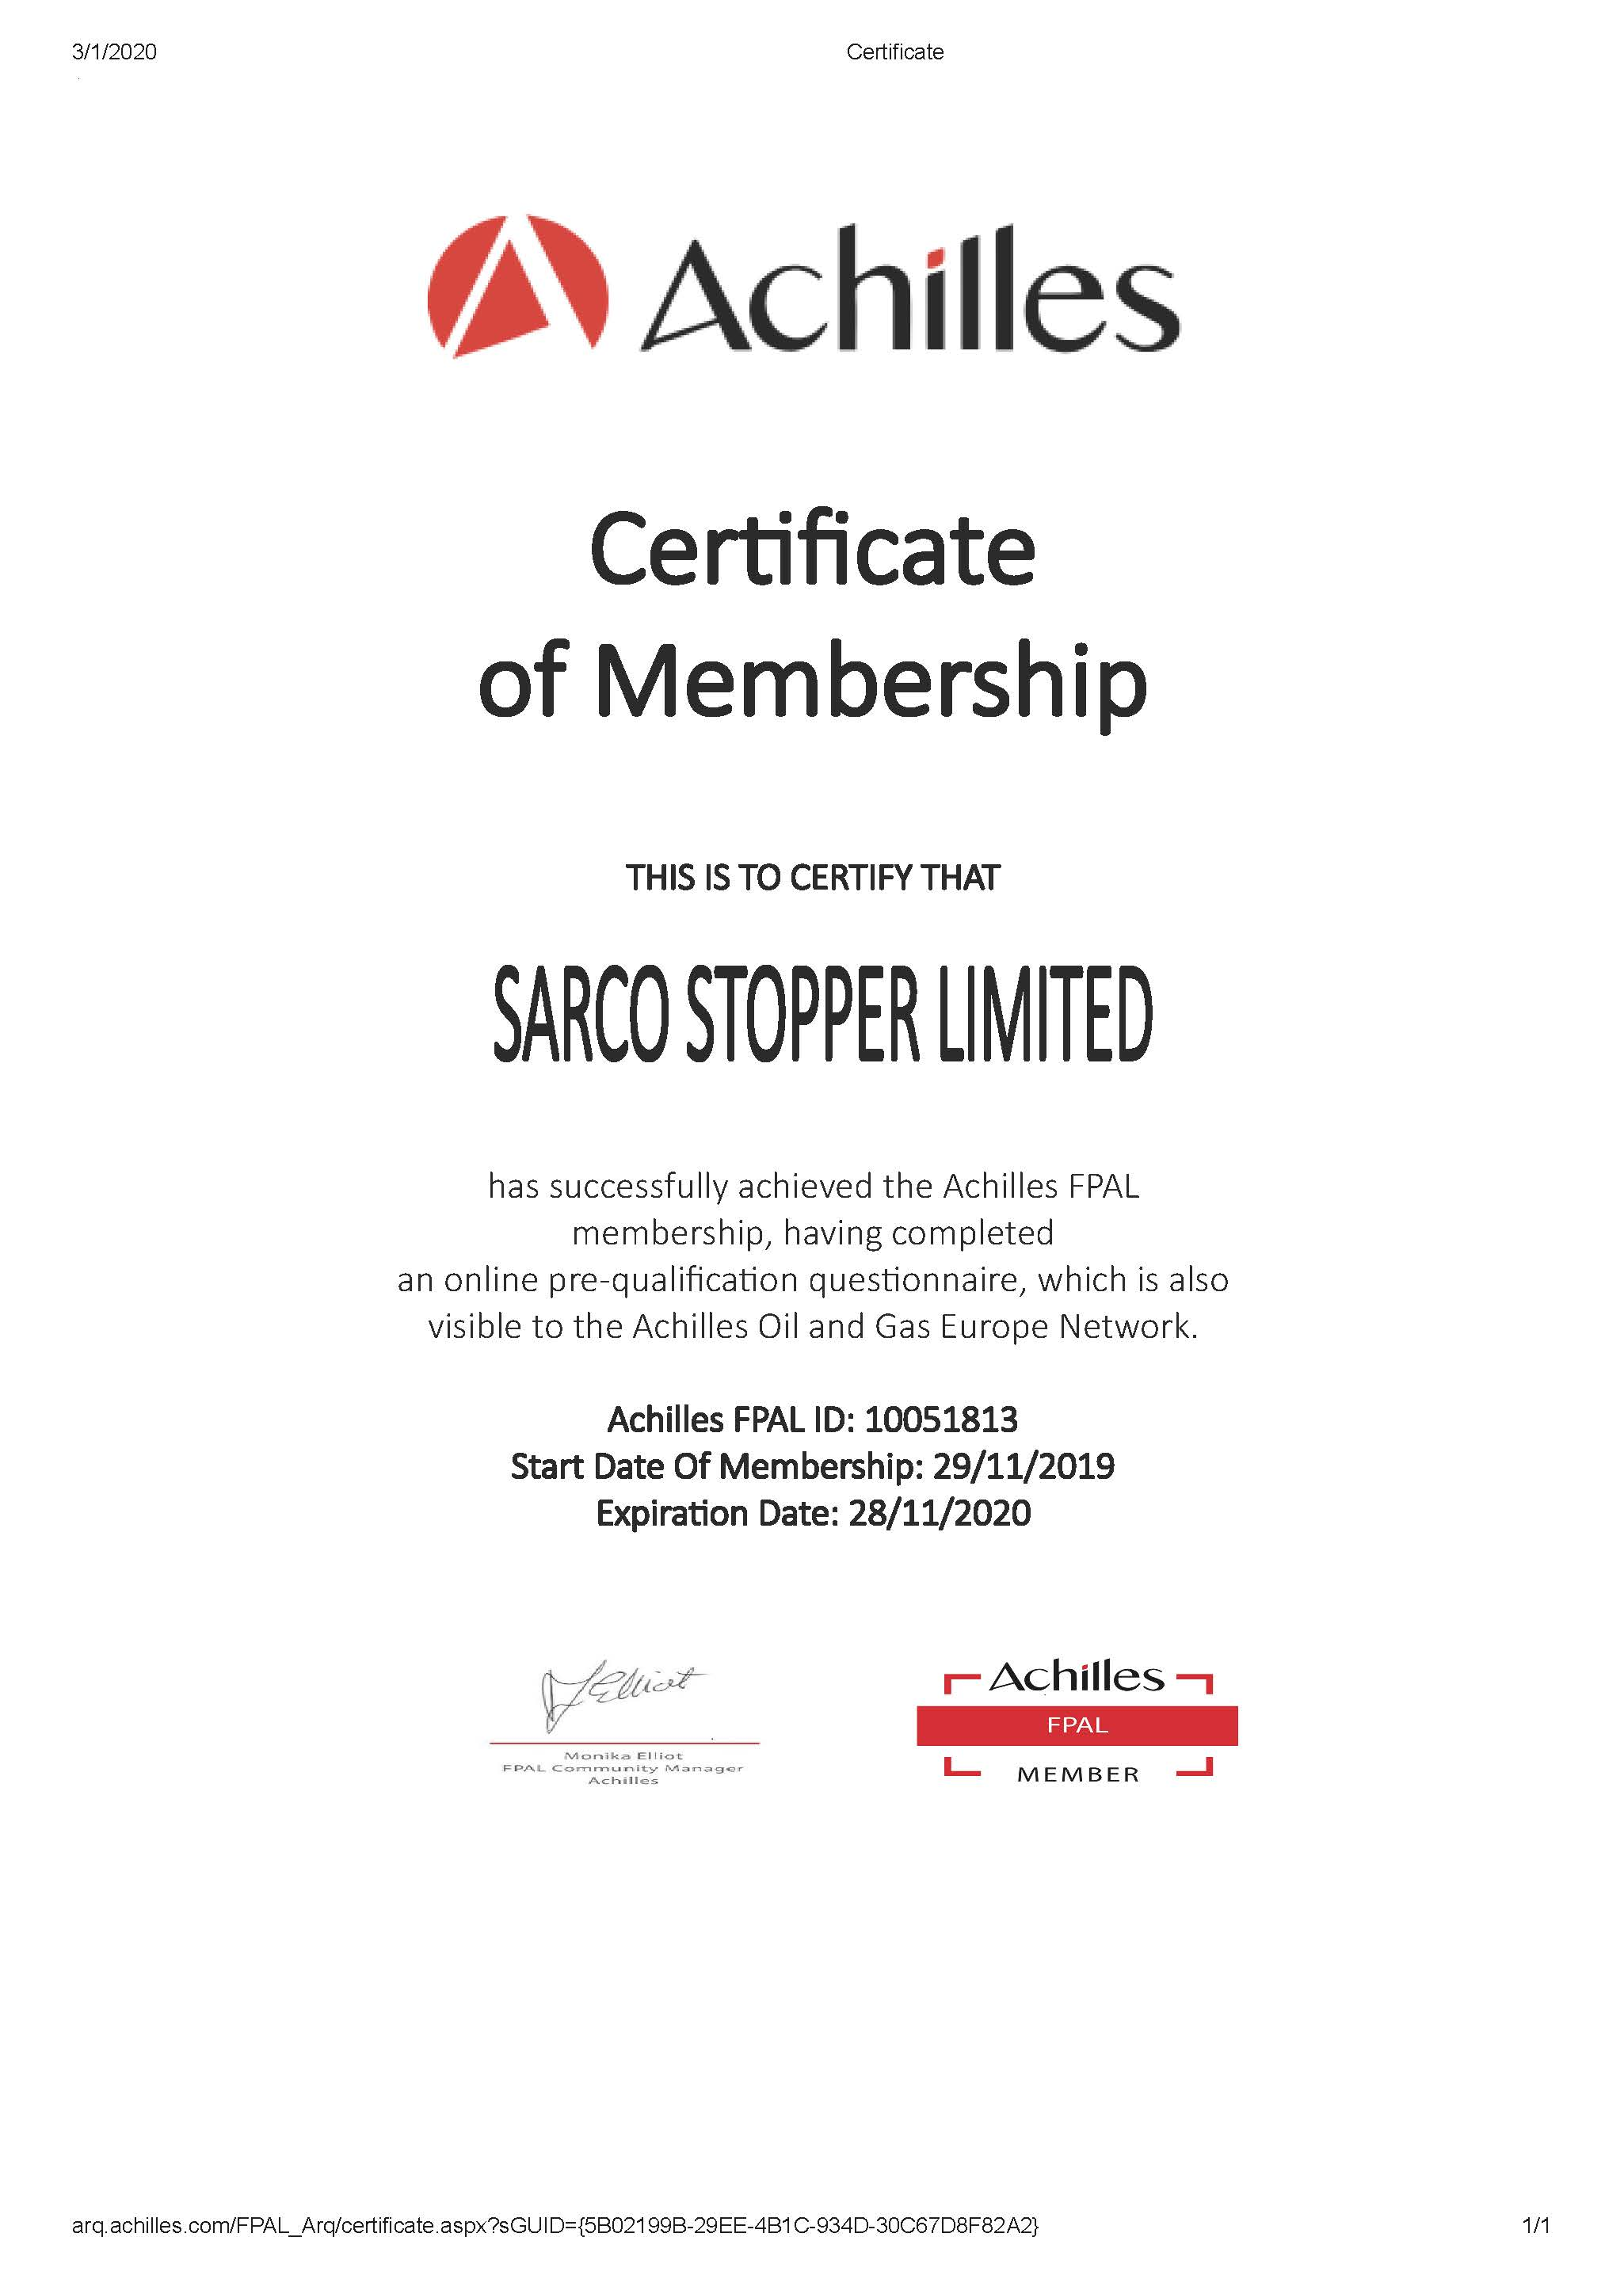 2020 Sarco Stopper FPAL Certificate